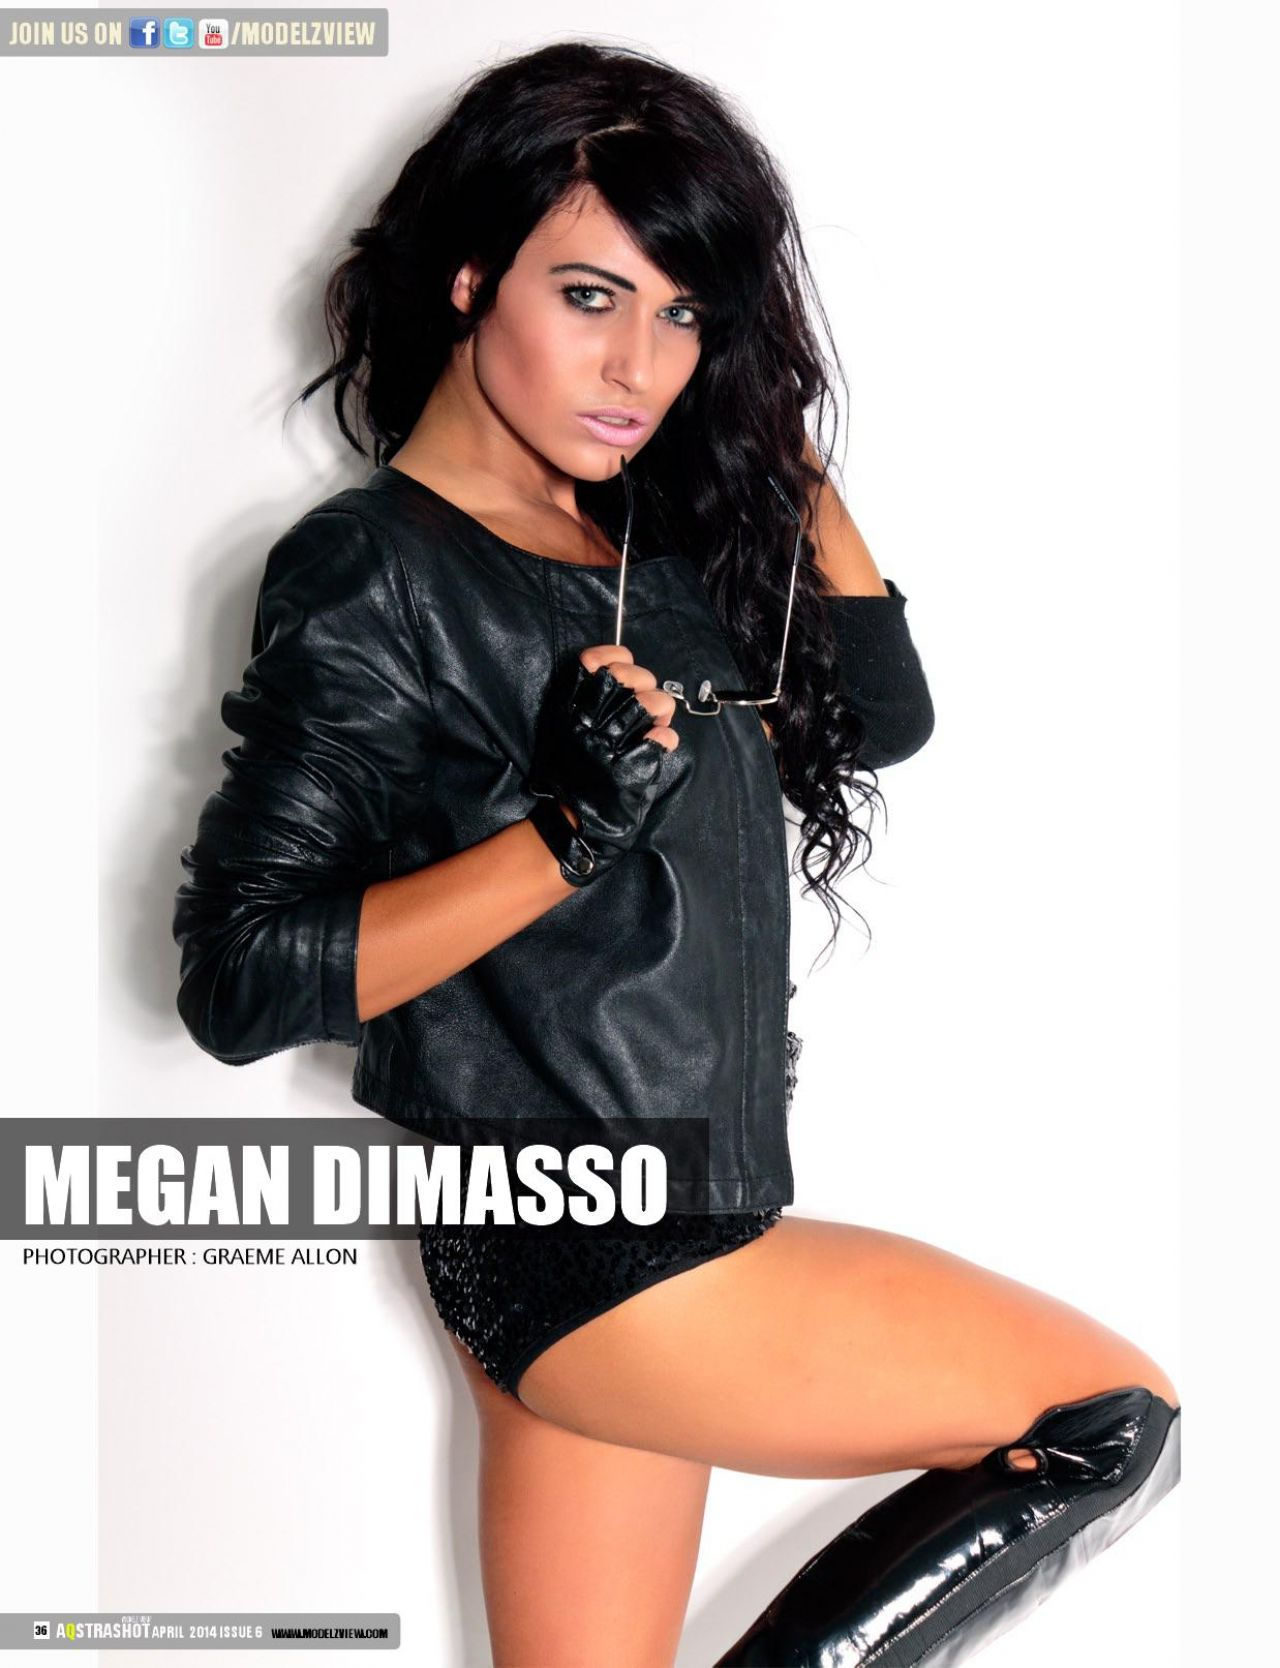 Megan Dimasso – Aqstrashot Magazine April 2014 Issue